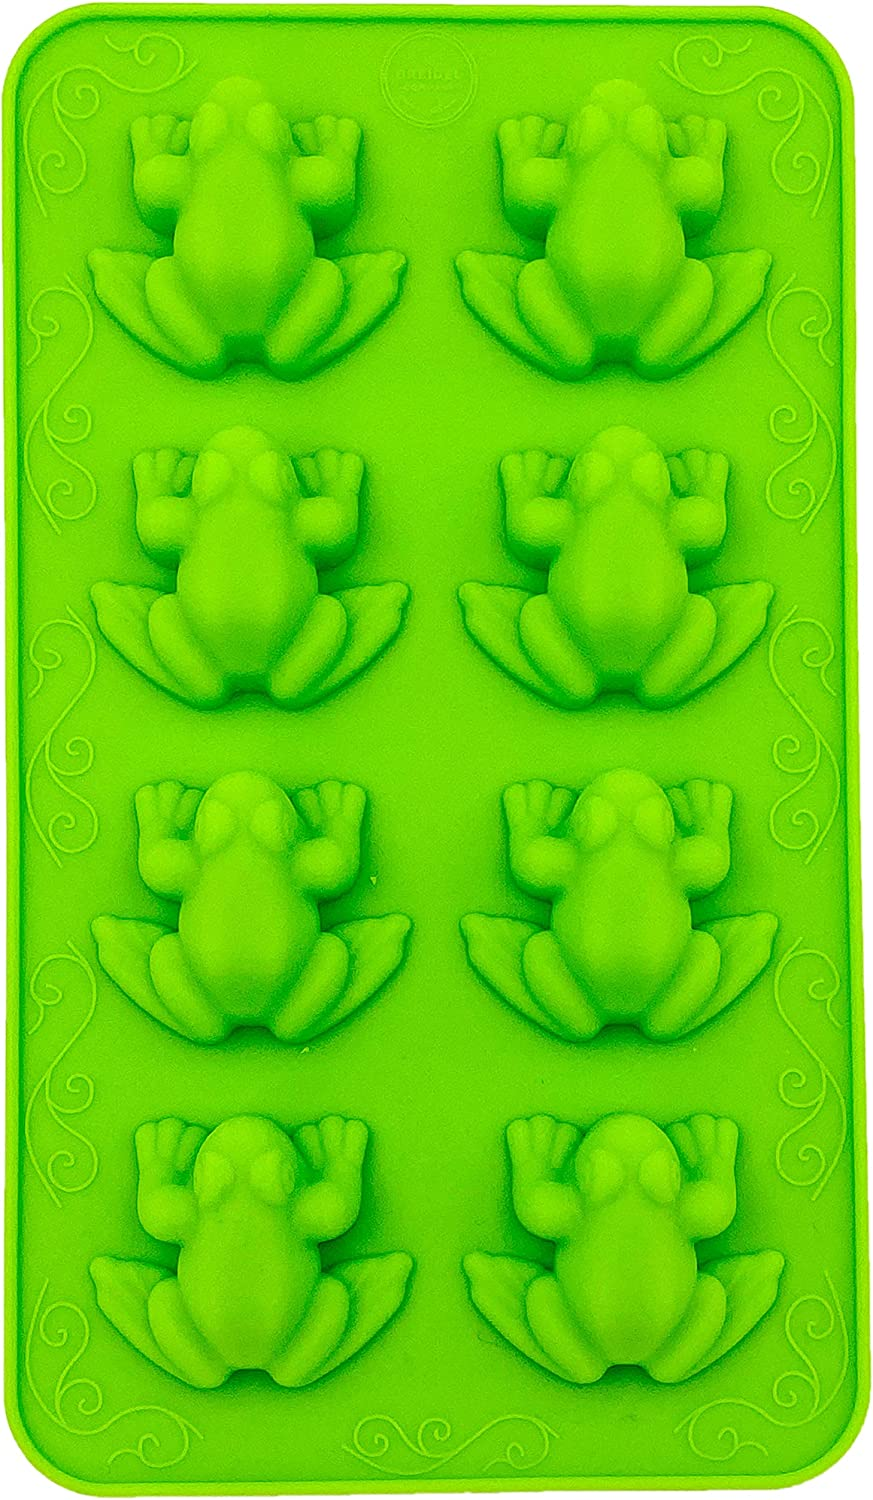 Frozen Frogs Silicone Mold Passover Bake Ware and Ice Tray